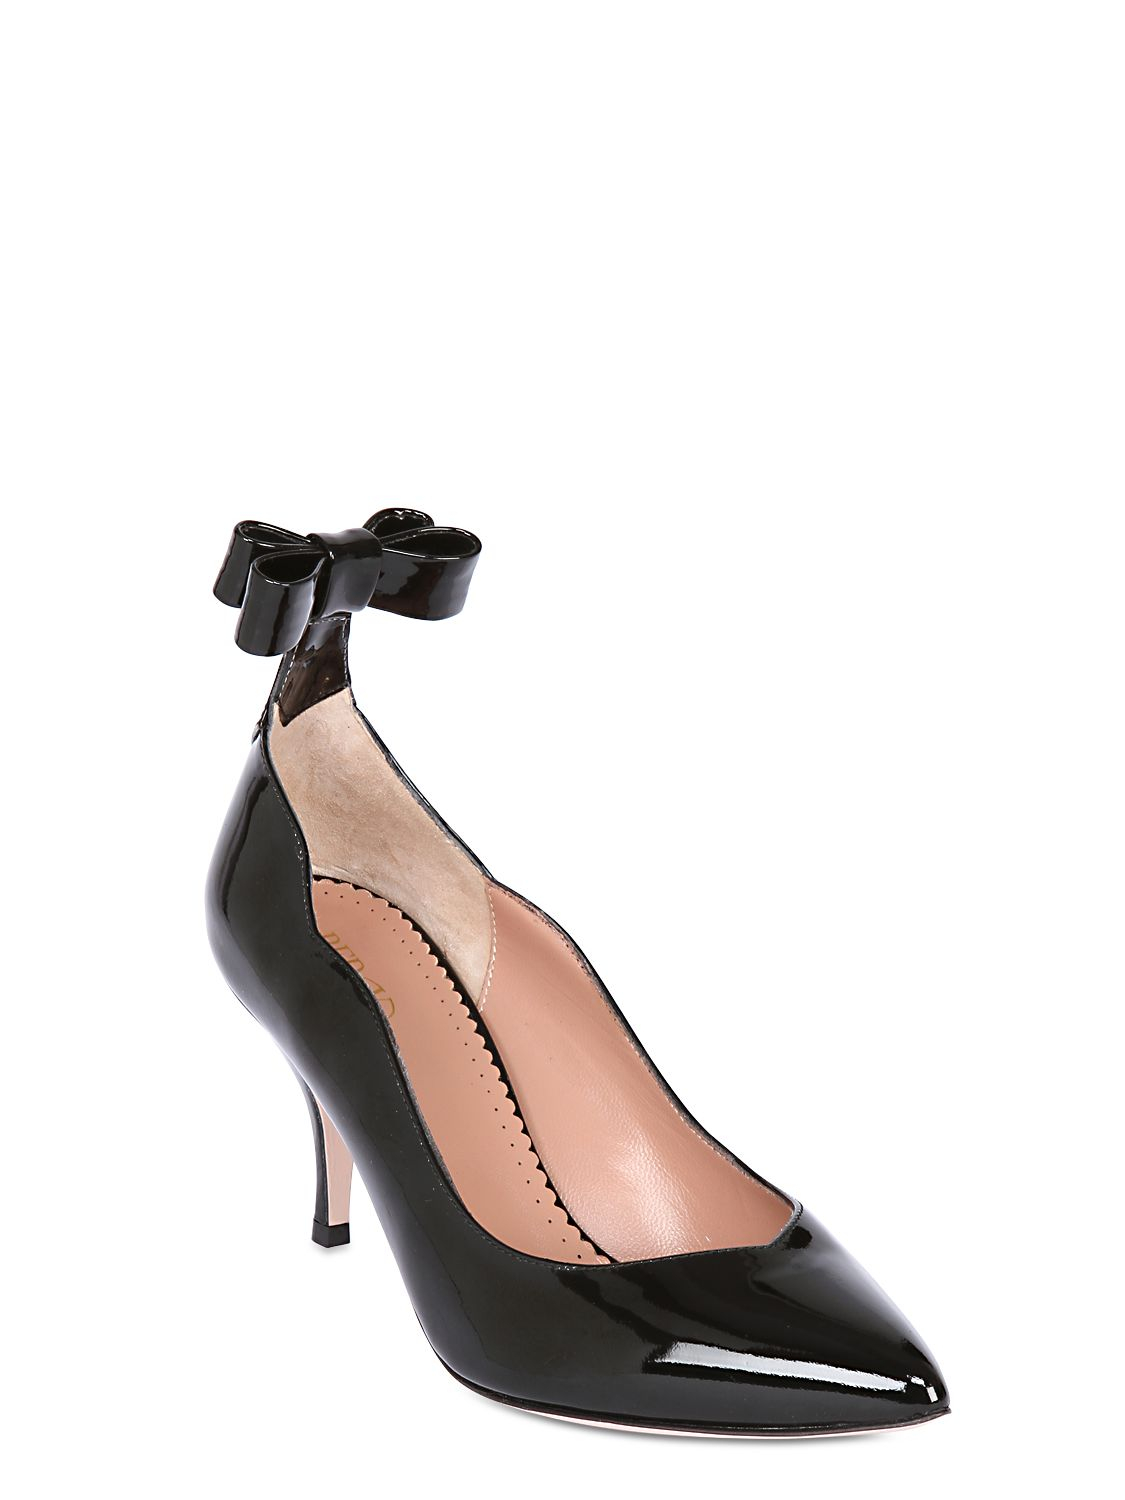 160a36e17cb Red Valentino 70Mm Patent Leather Bow Pumps in Black